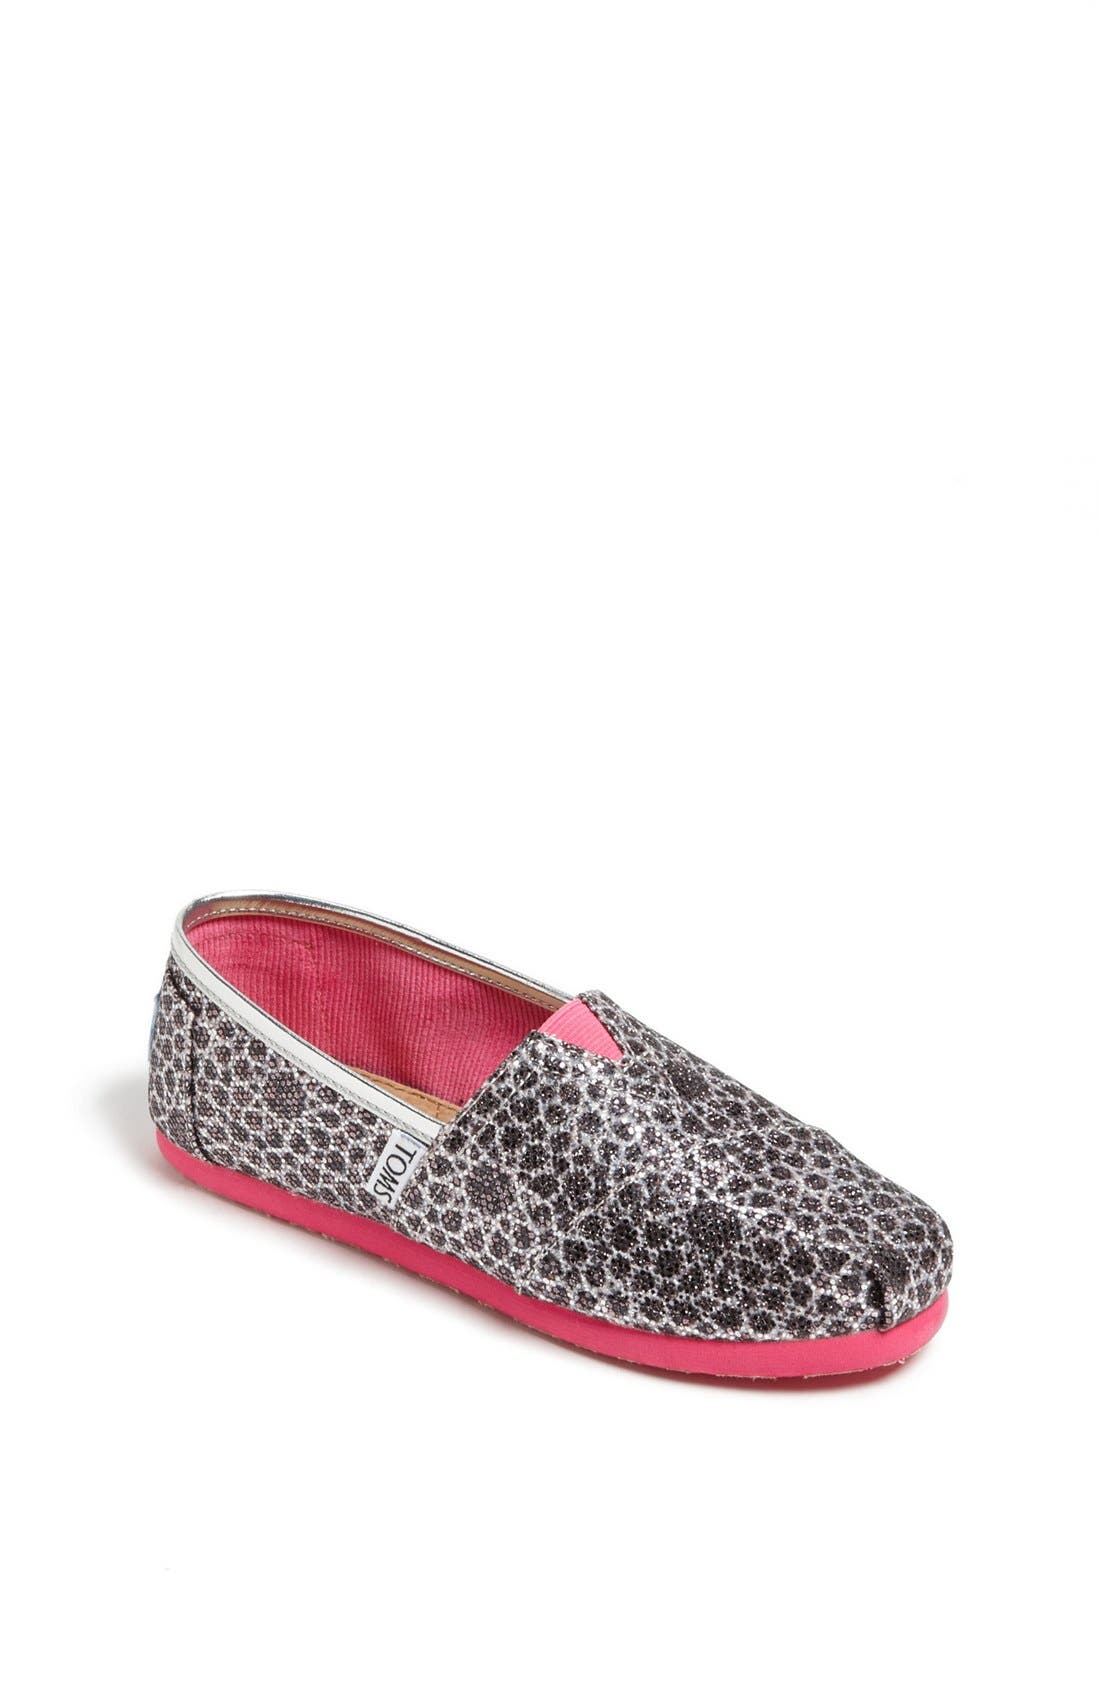 Alternate Image 1 Selected - TOMS 'Classic Youth - Moroccan Alpargata' Slip-On (Toddler, Little Kid & Big Kid)